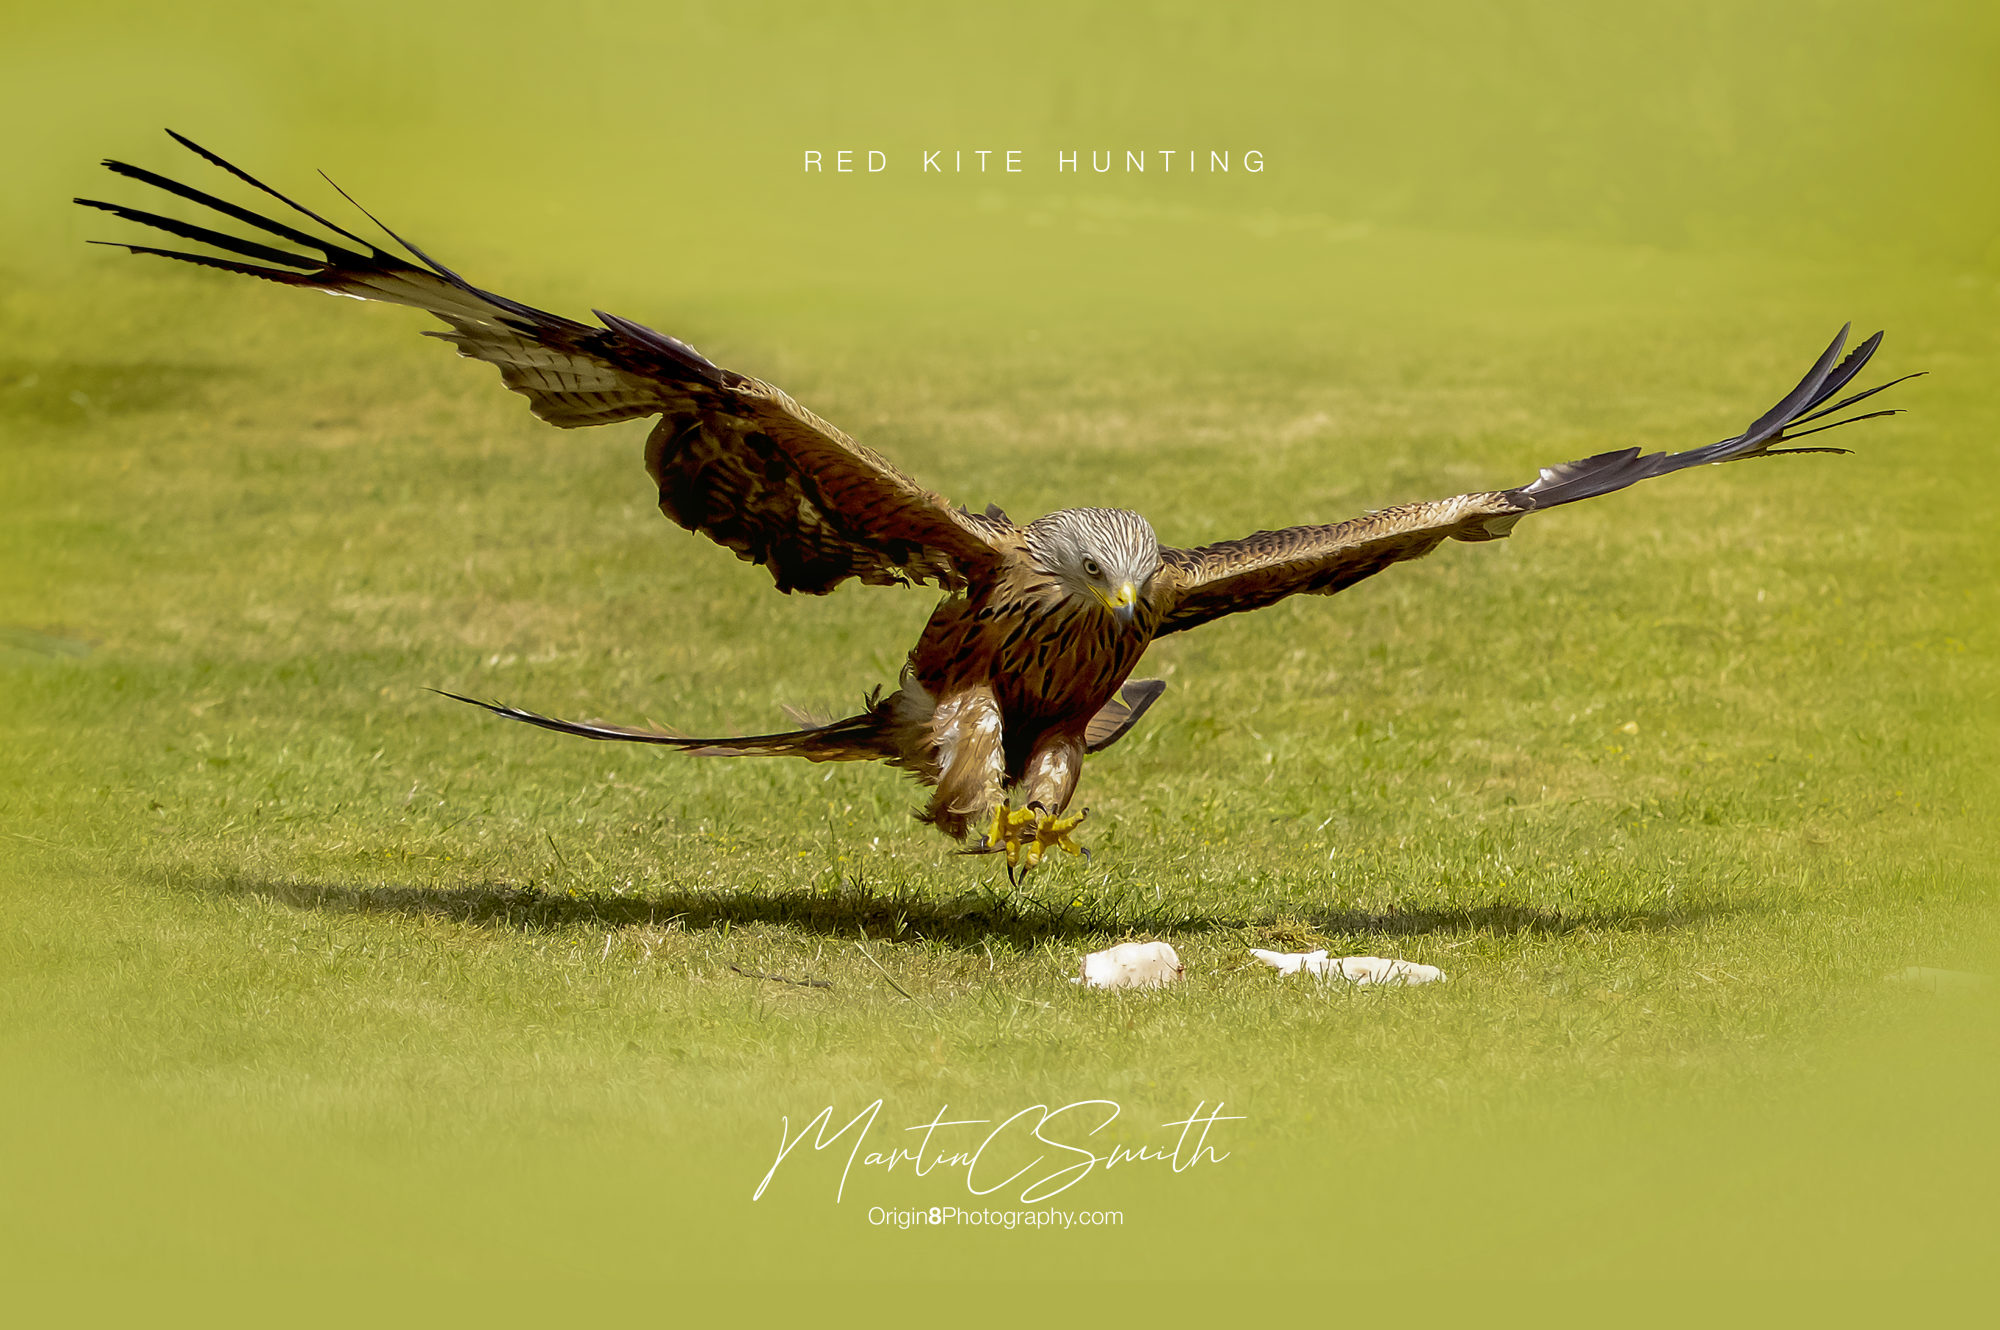 Red Kite hunting